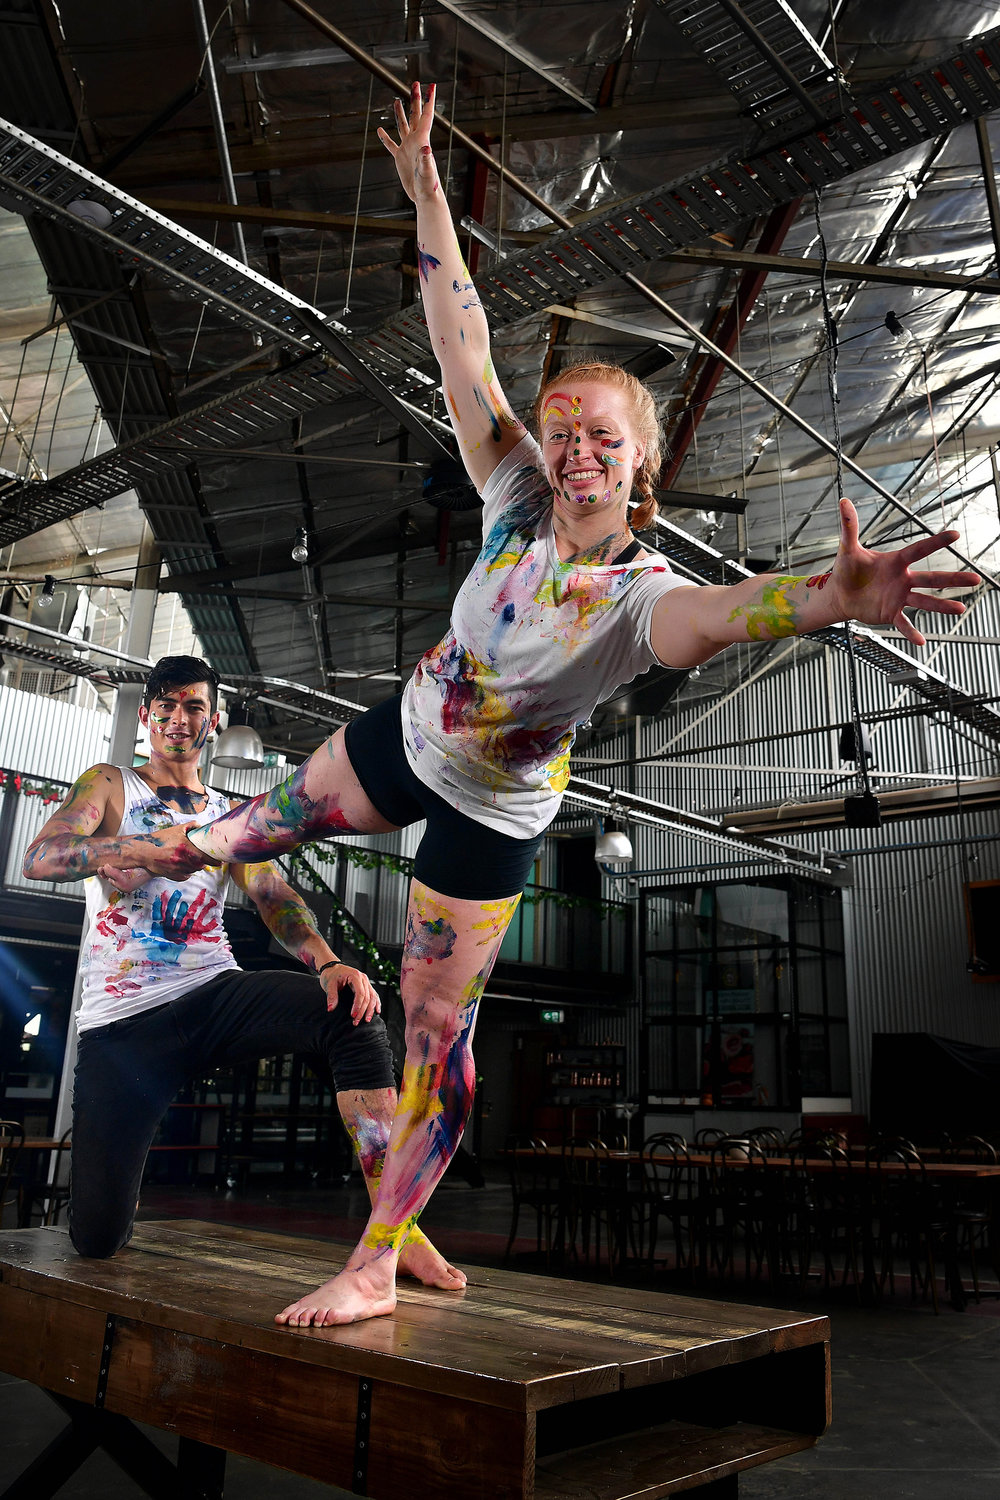 CHP_Export_170118730_Vertical Insanity Circus performers  Ryan Divett & Alex Charman  show off their.jpg